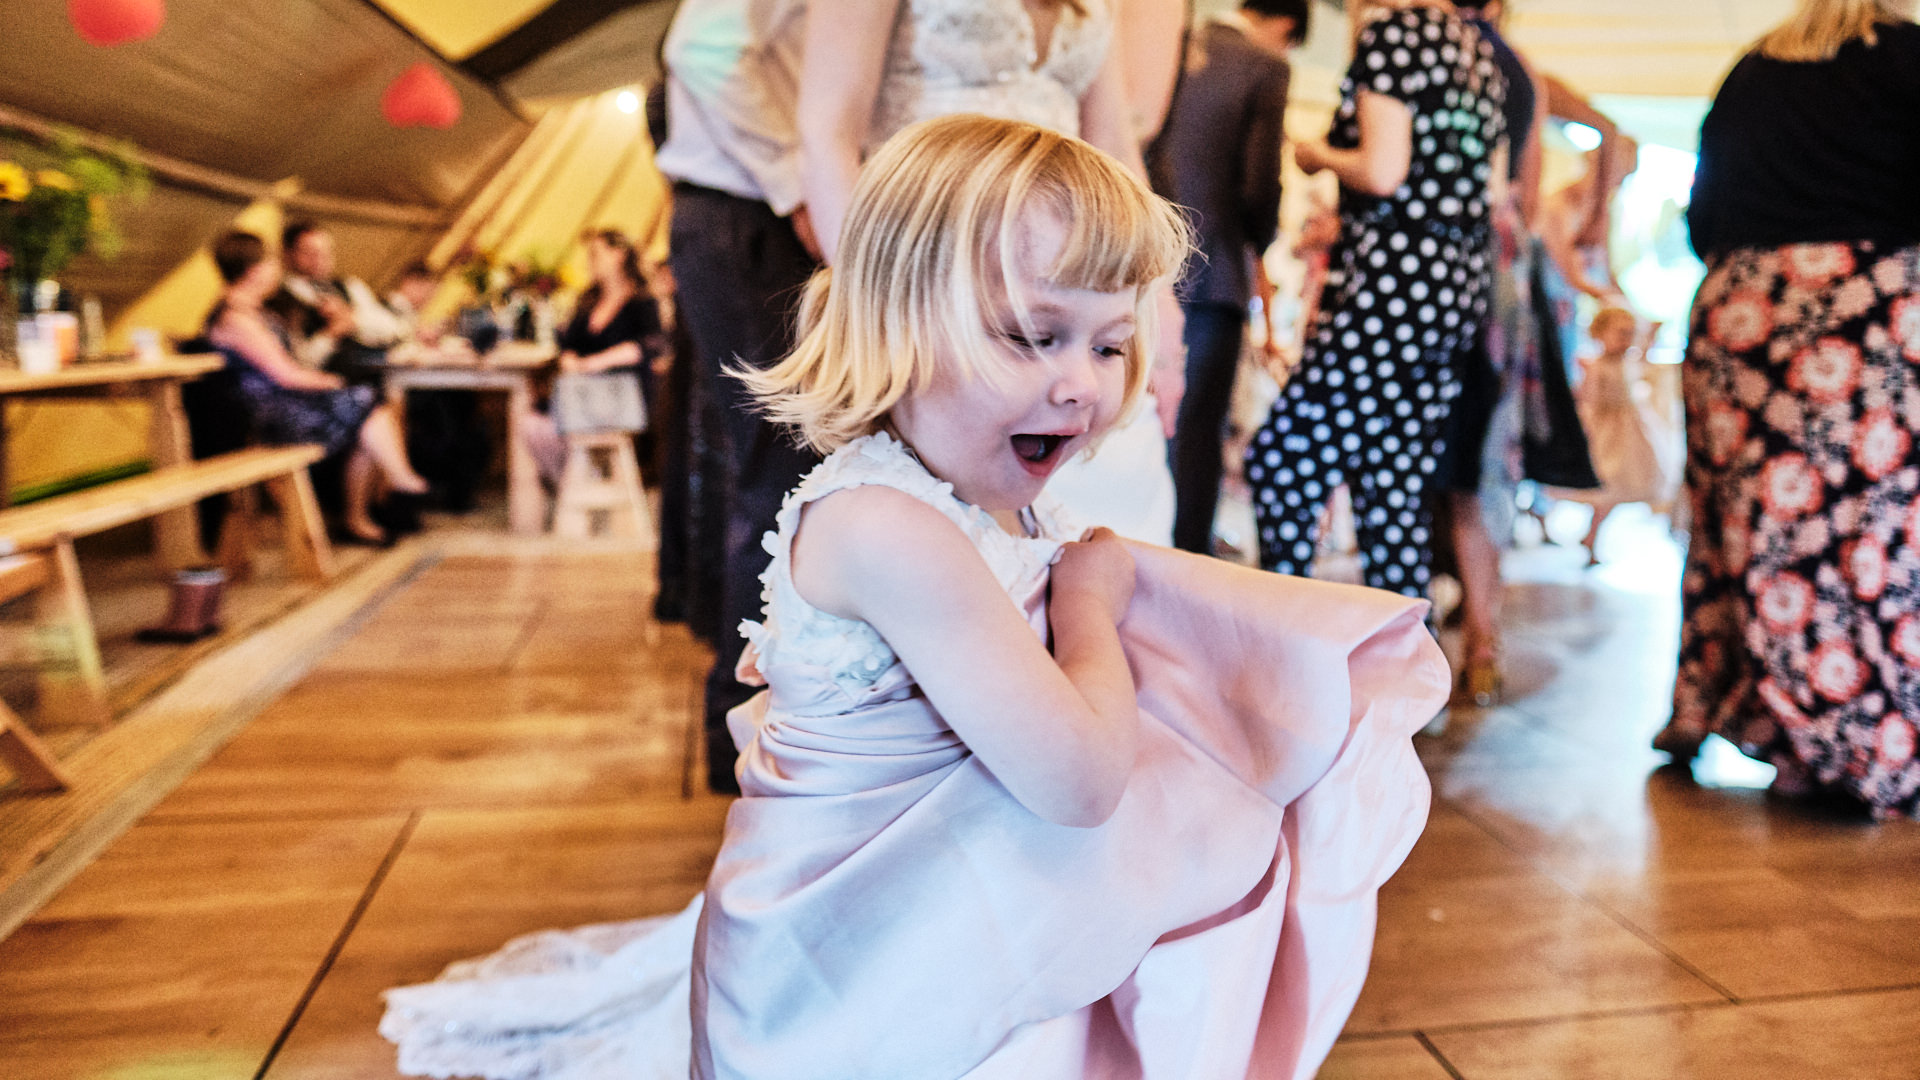 colour photograph of a young girls dancing on the dance floor during a wedding reception